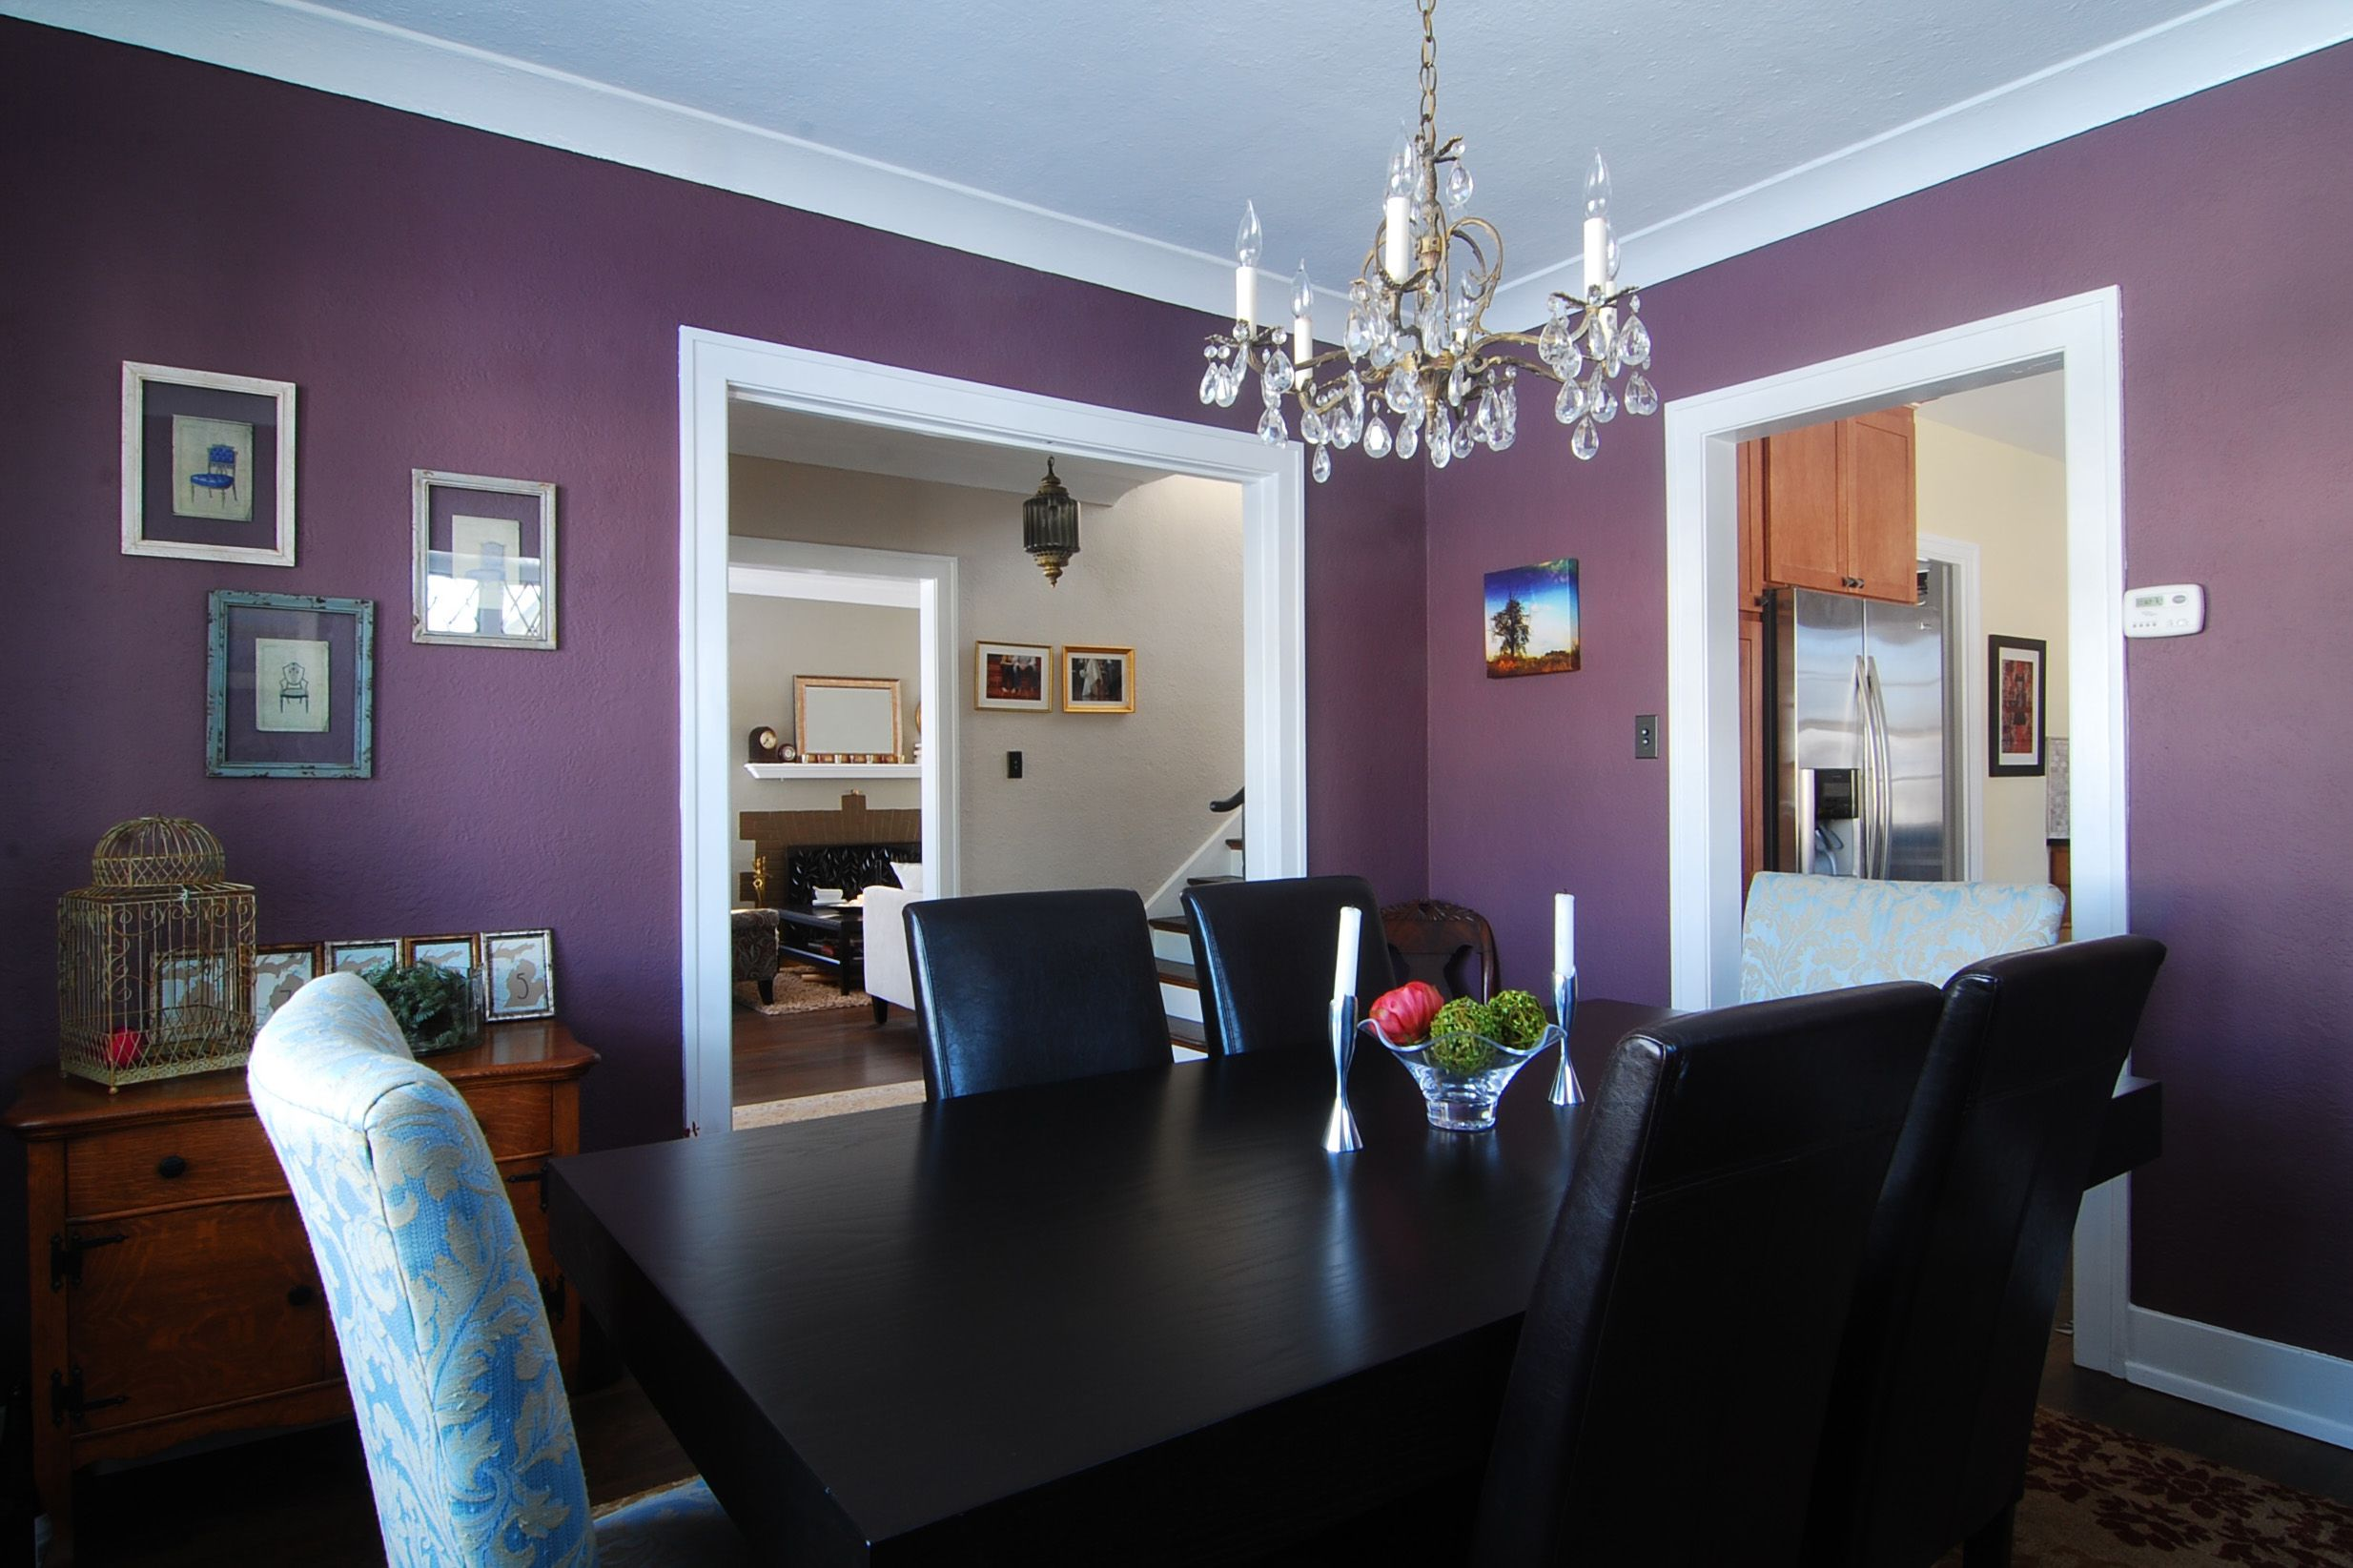 Dining Room In Plum Deep Violet Interior Paint Color From Behr